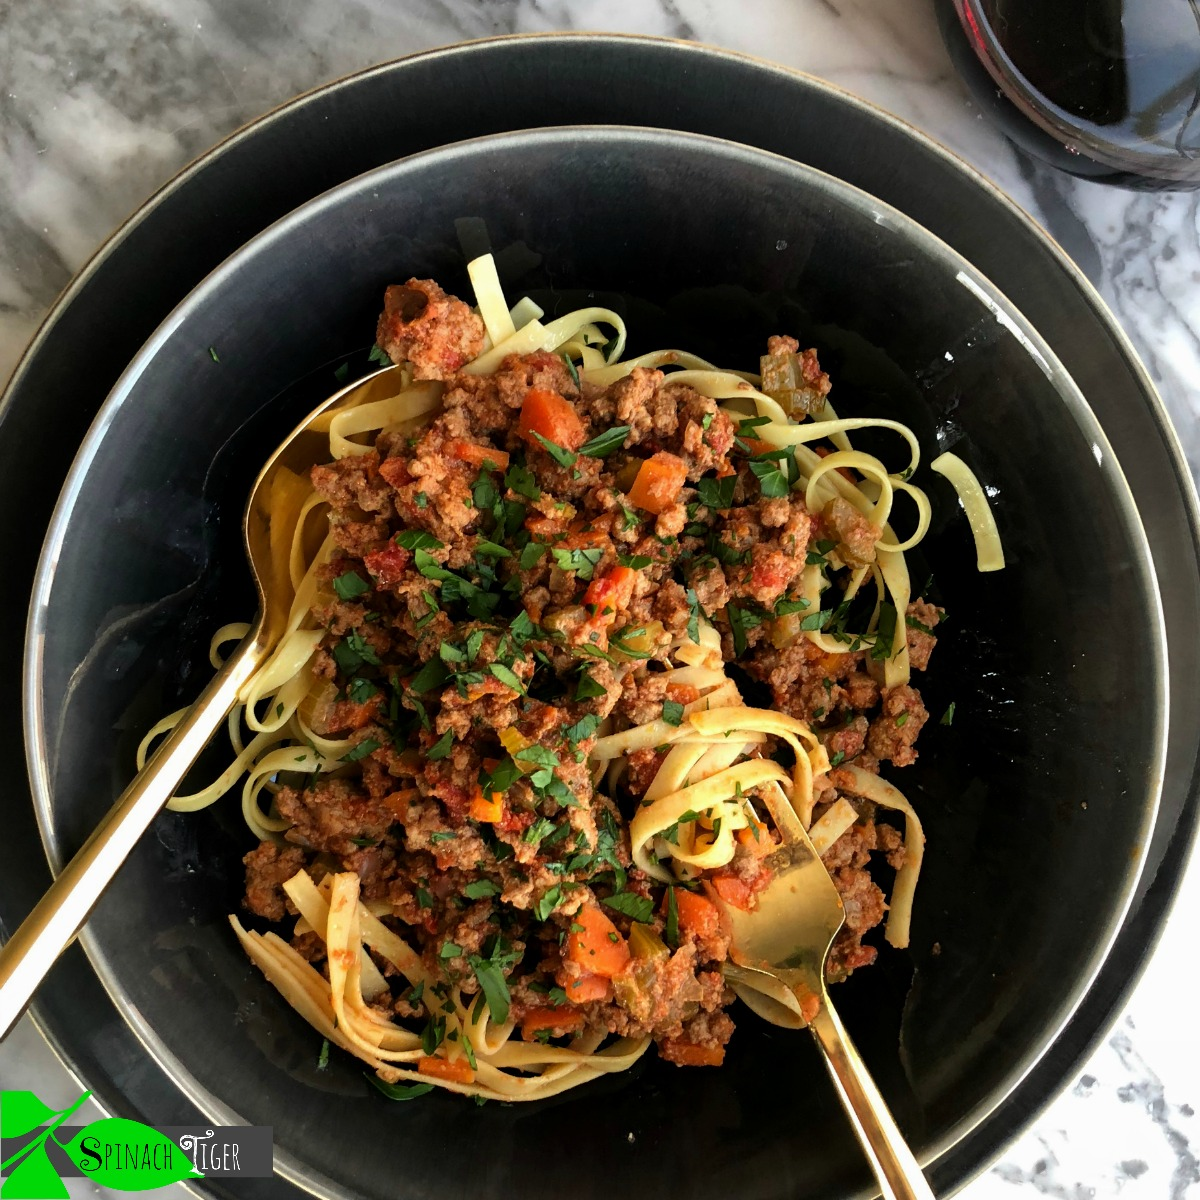 How to Make Marcella Hazan's Bolognese Sauce from Spinach Tiger